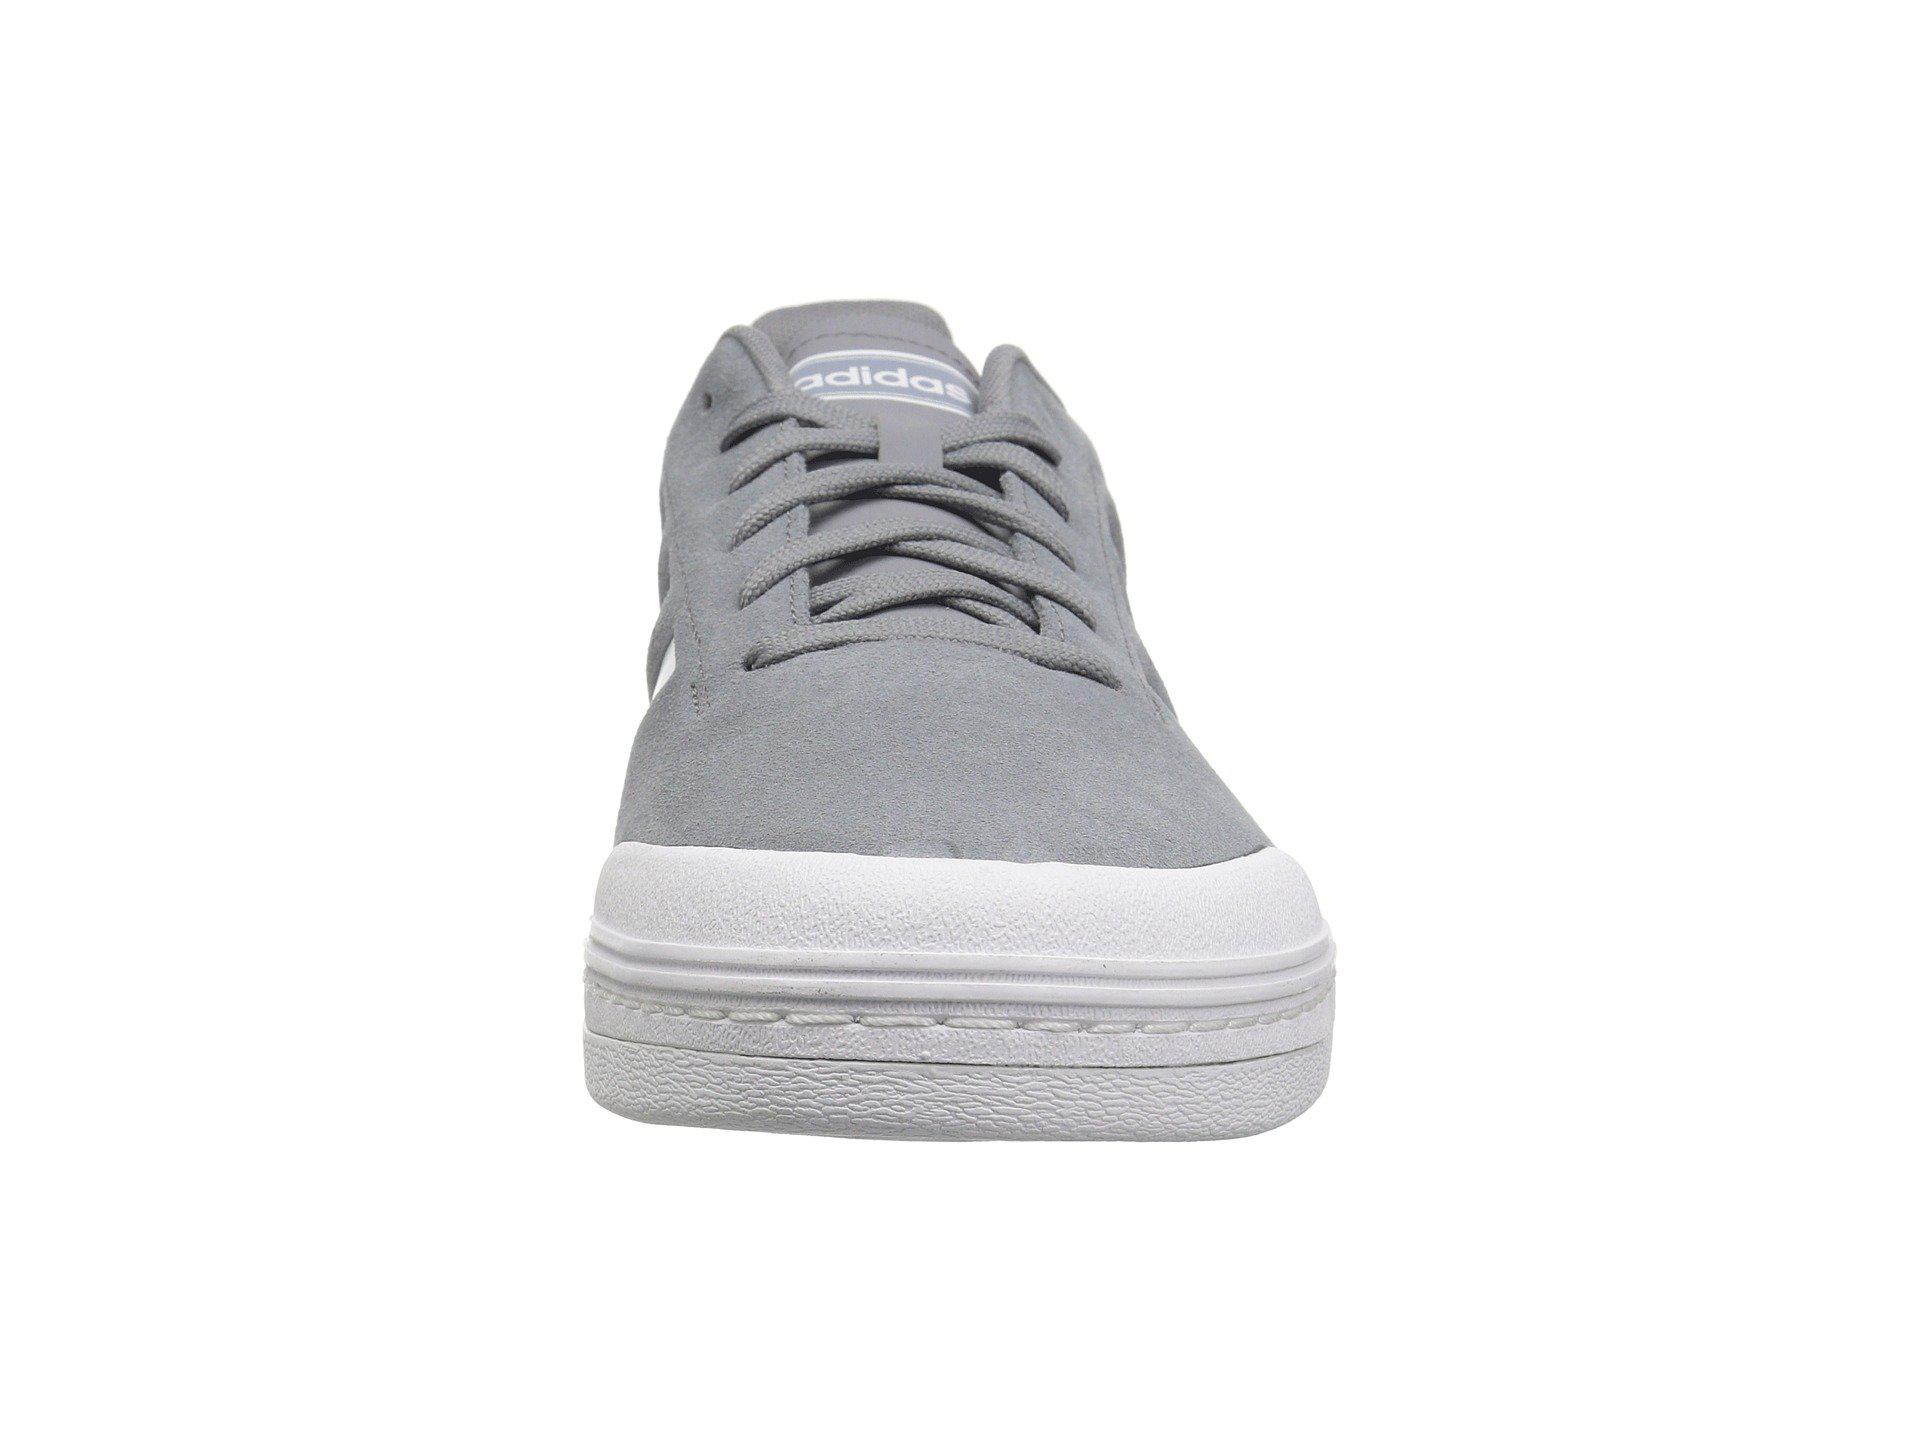 83548289eaf4 Lyst - adidas Court 70s in Gray for Men